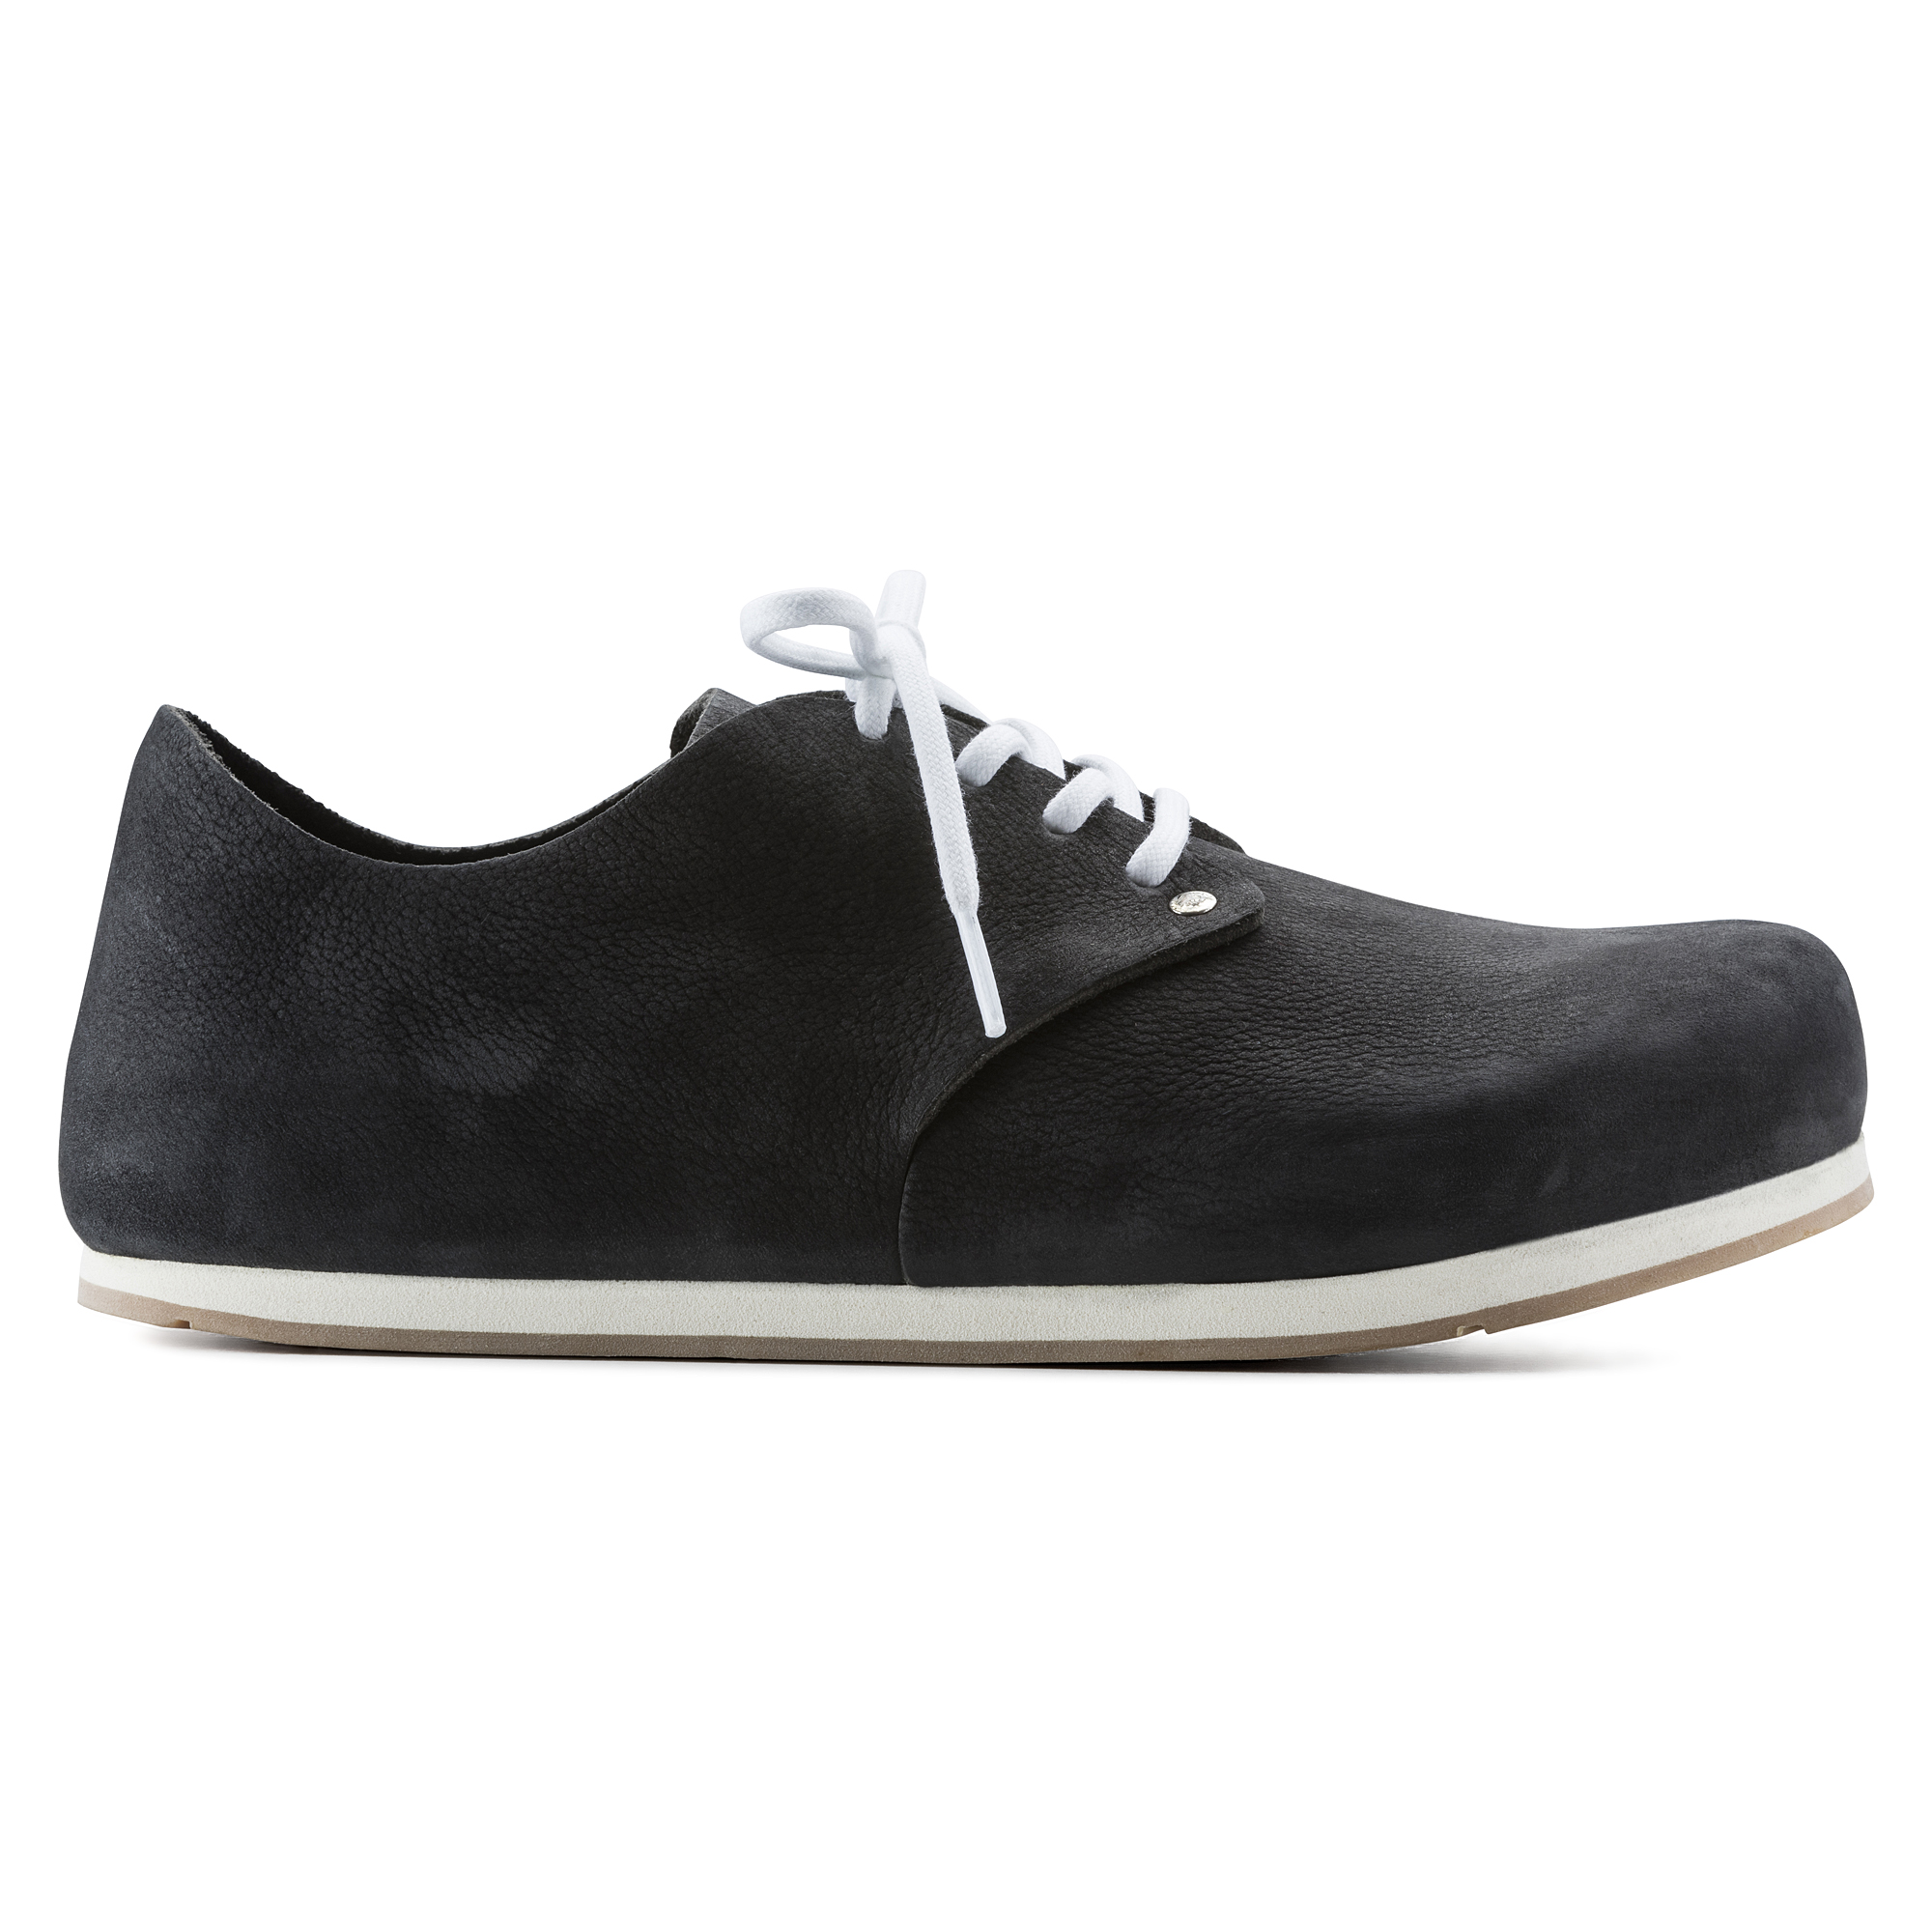 Maine Natural Leather Soft Black